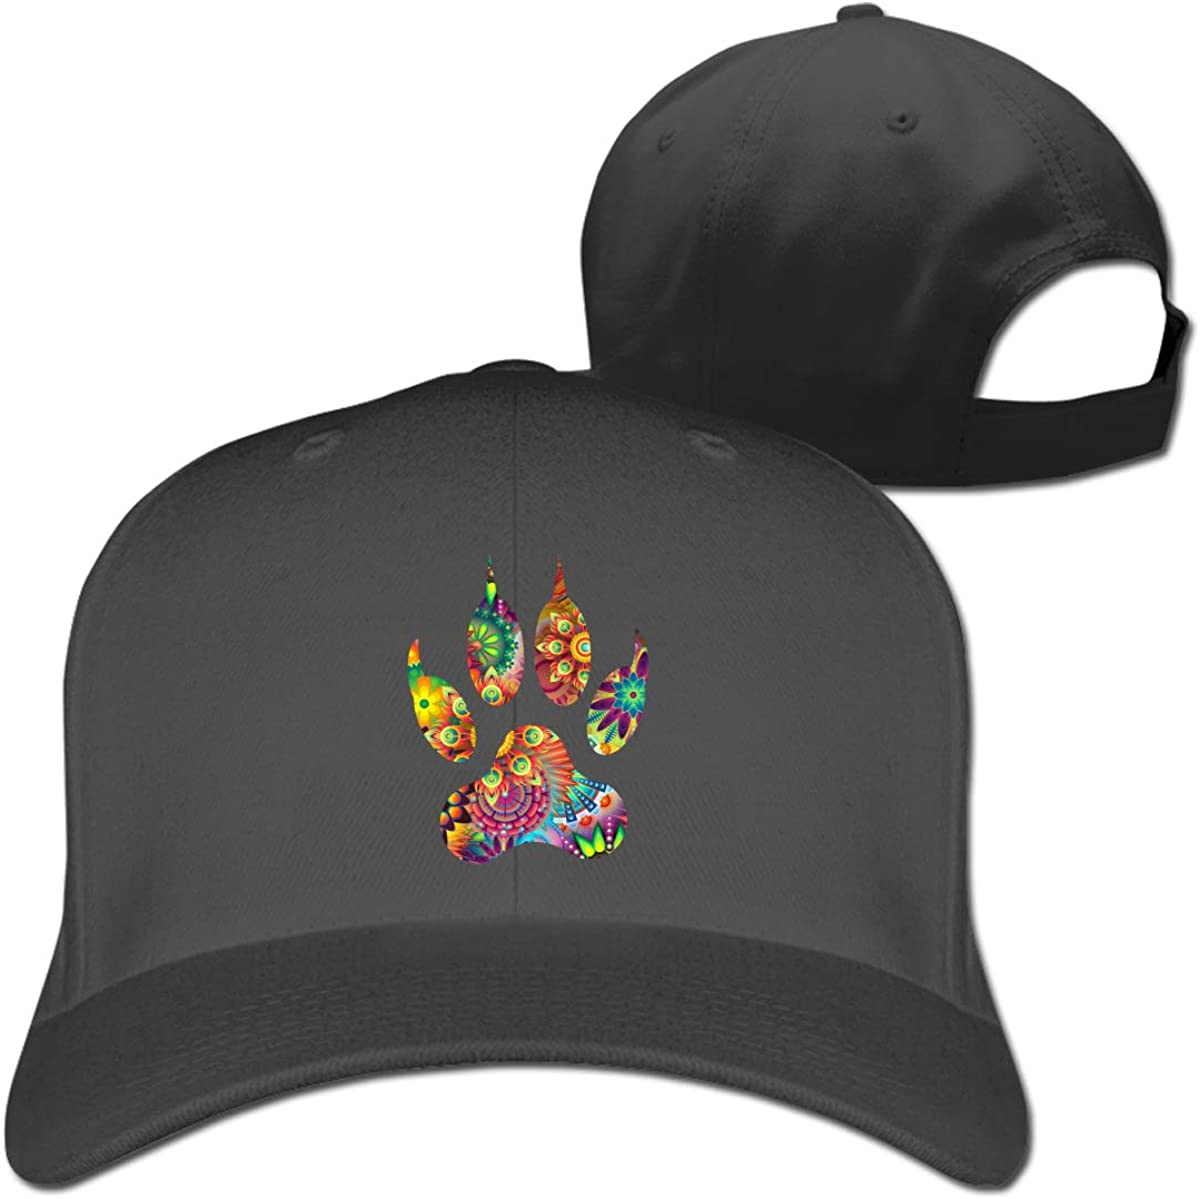 Psychedelic Paw Print Fashion Adjustable Cotton Baseball Caps Trucker Driver Hat Outdoor Cap Black